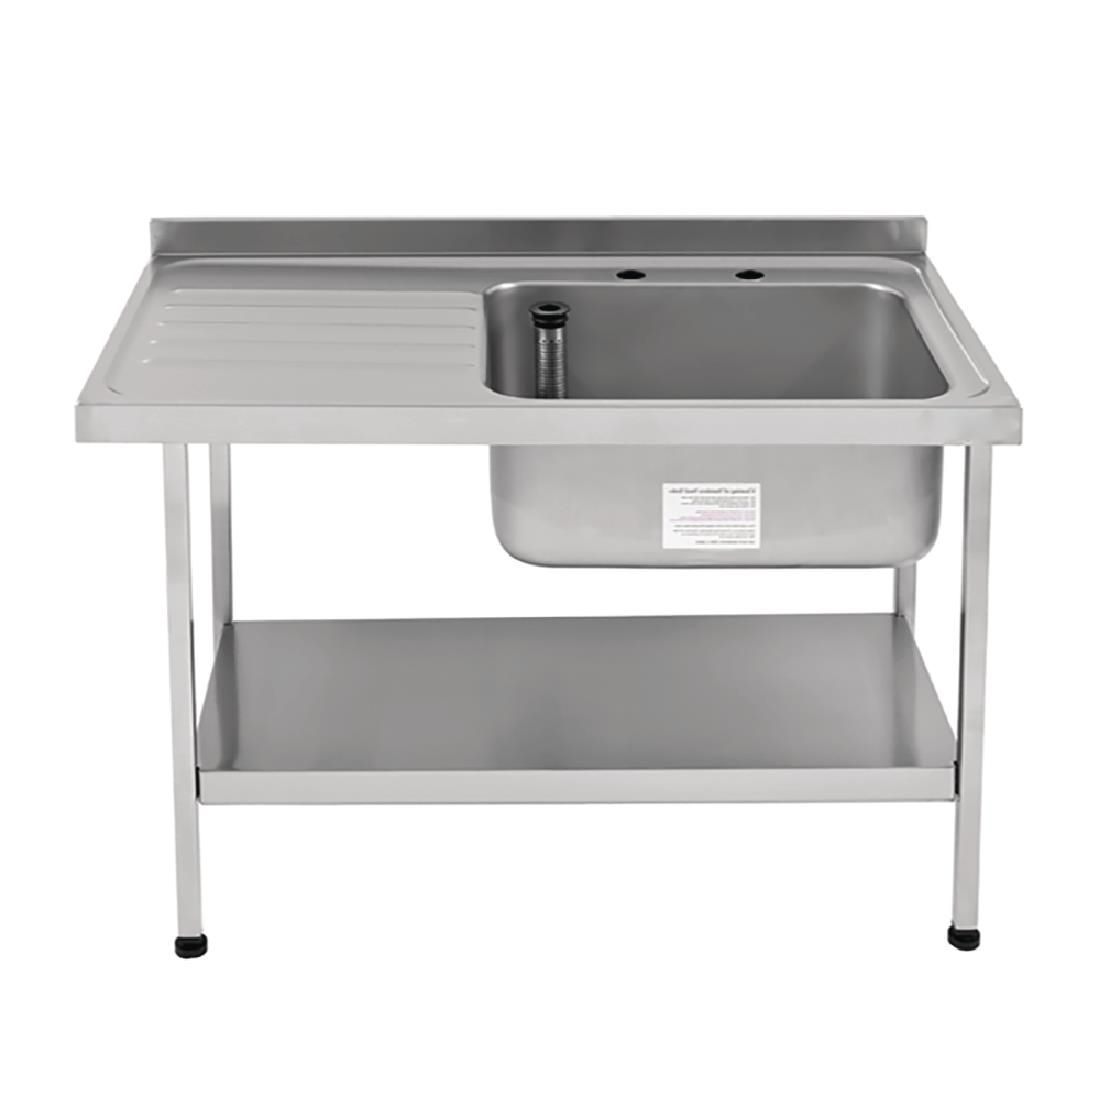 Franke Self Assembly Stainless Steel Sink Right Hand Bowl 1200x 650mm - P366